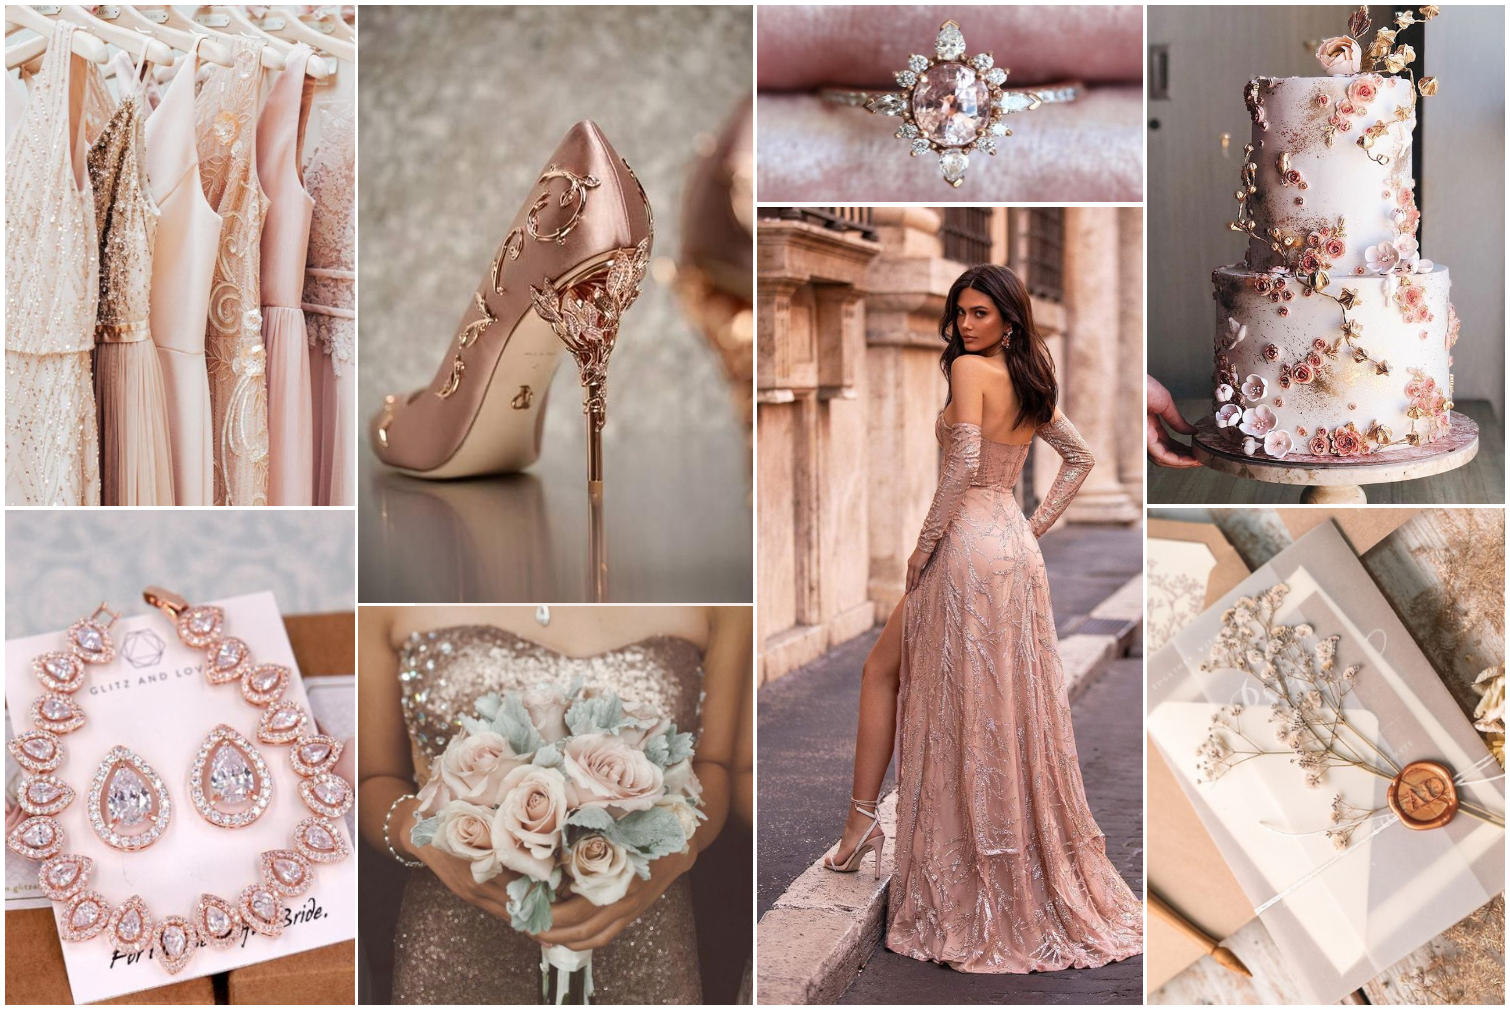 Rose Gold Wedding Theme For The Most Romantic Fall Ceremony | January Girl